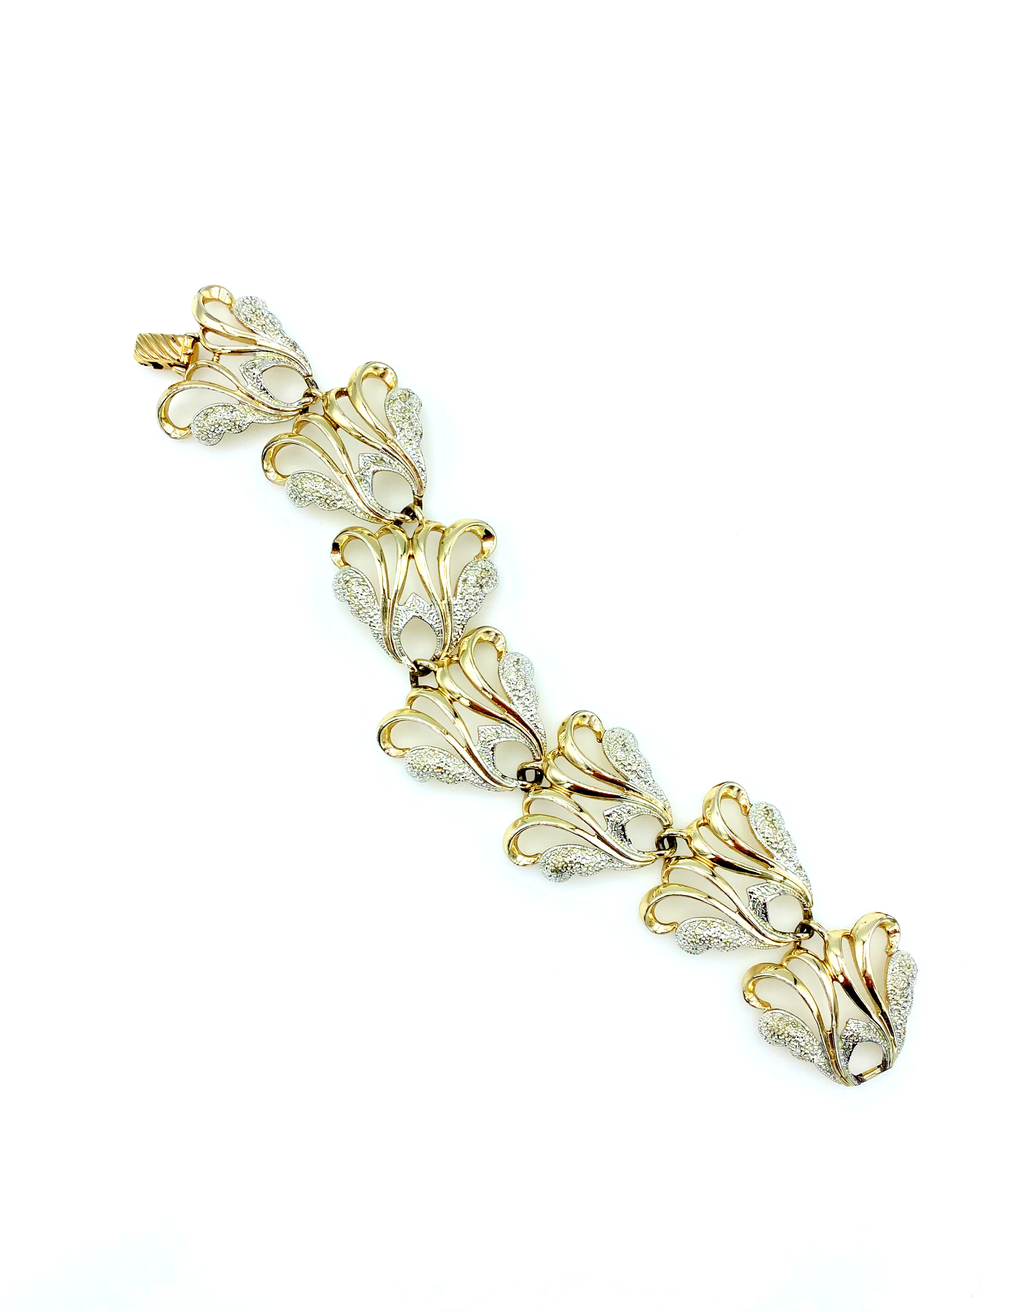 Sarah Coventry Gold & Silver Statement Bracelet-Sustainable Fashion with Vintage Style-Trending Designer Fashion-24 Wishes